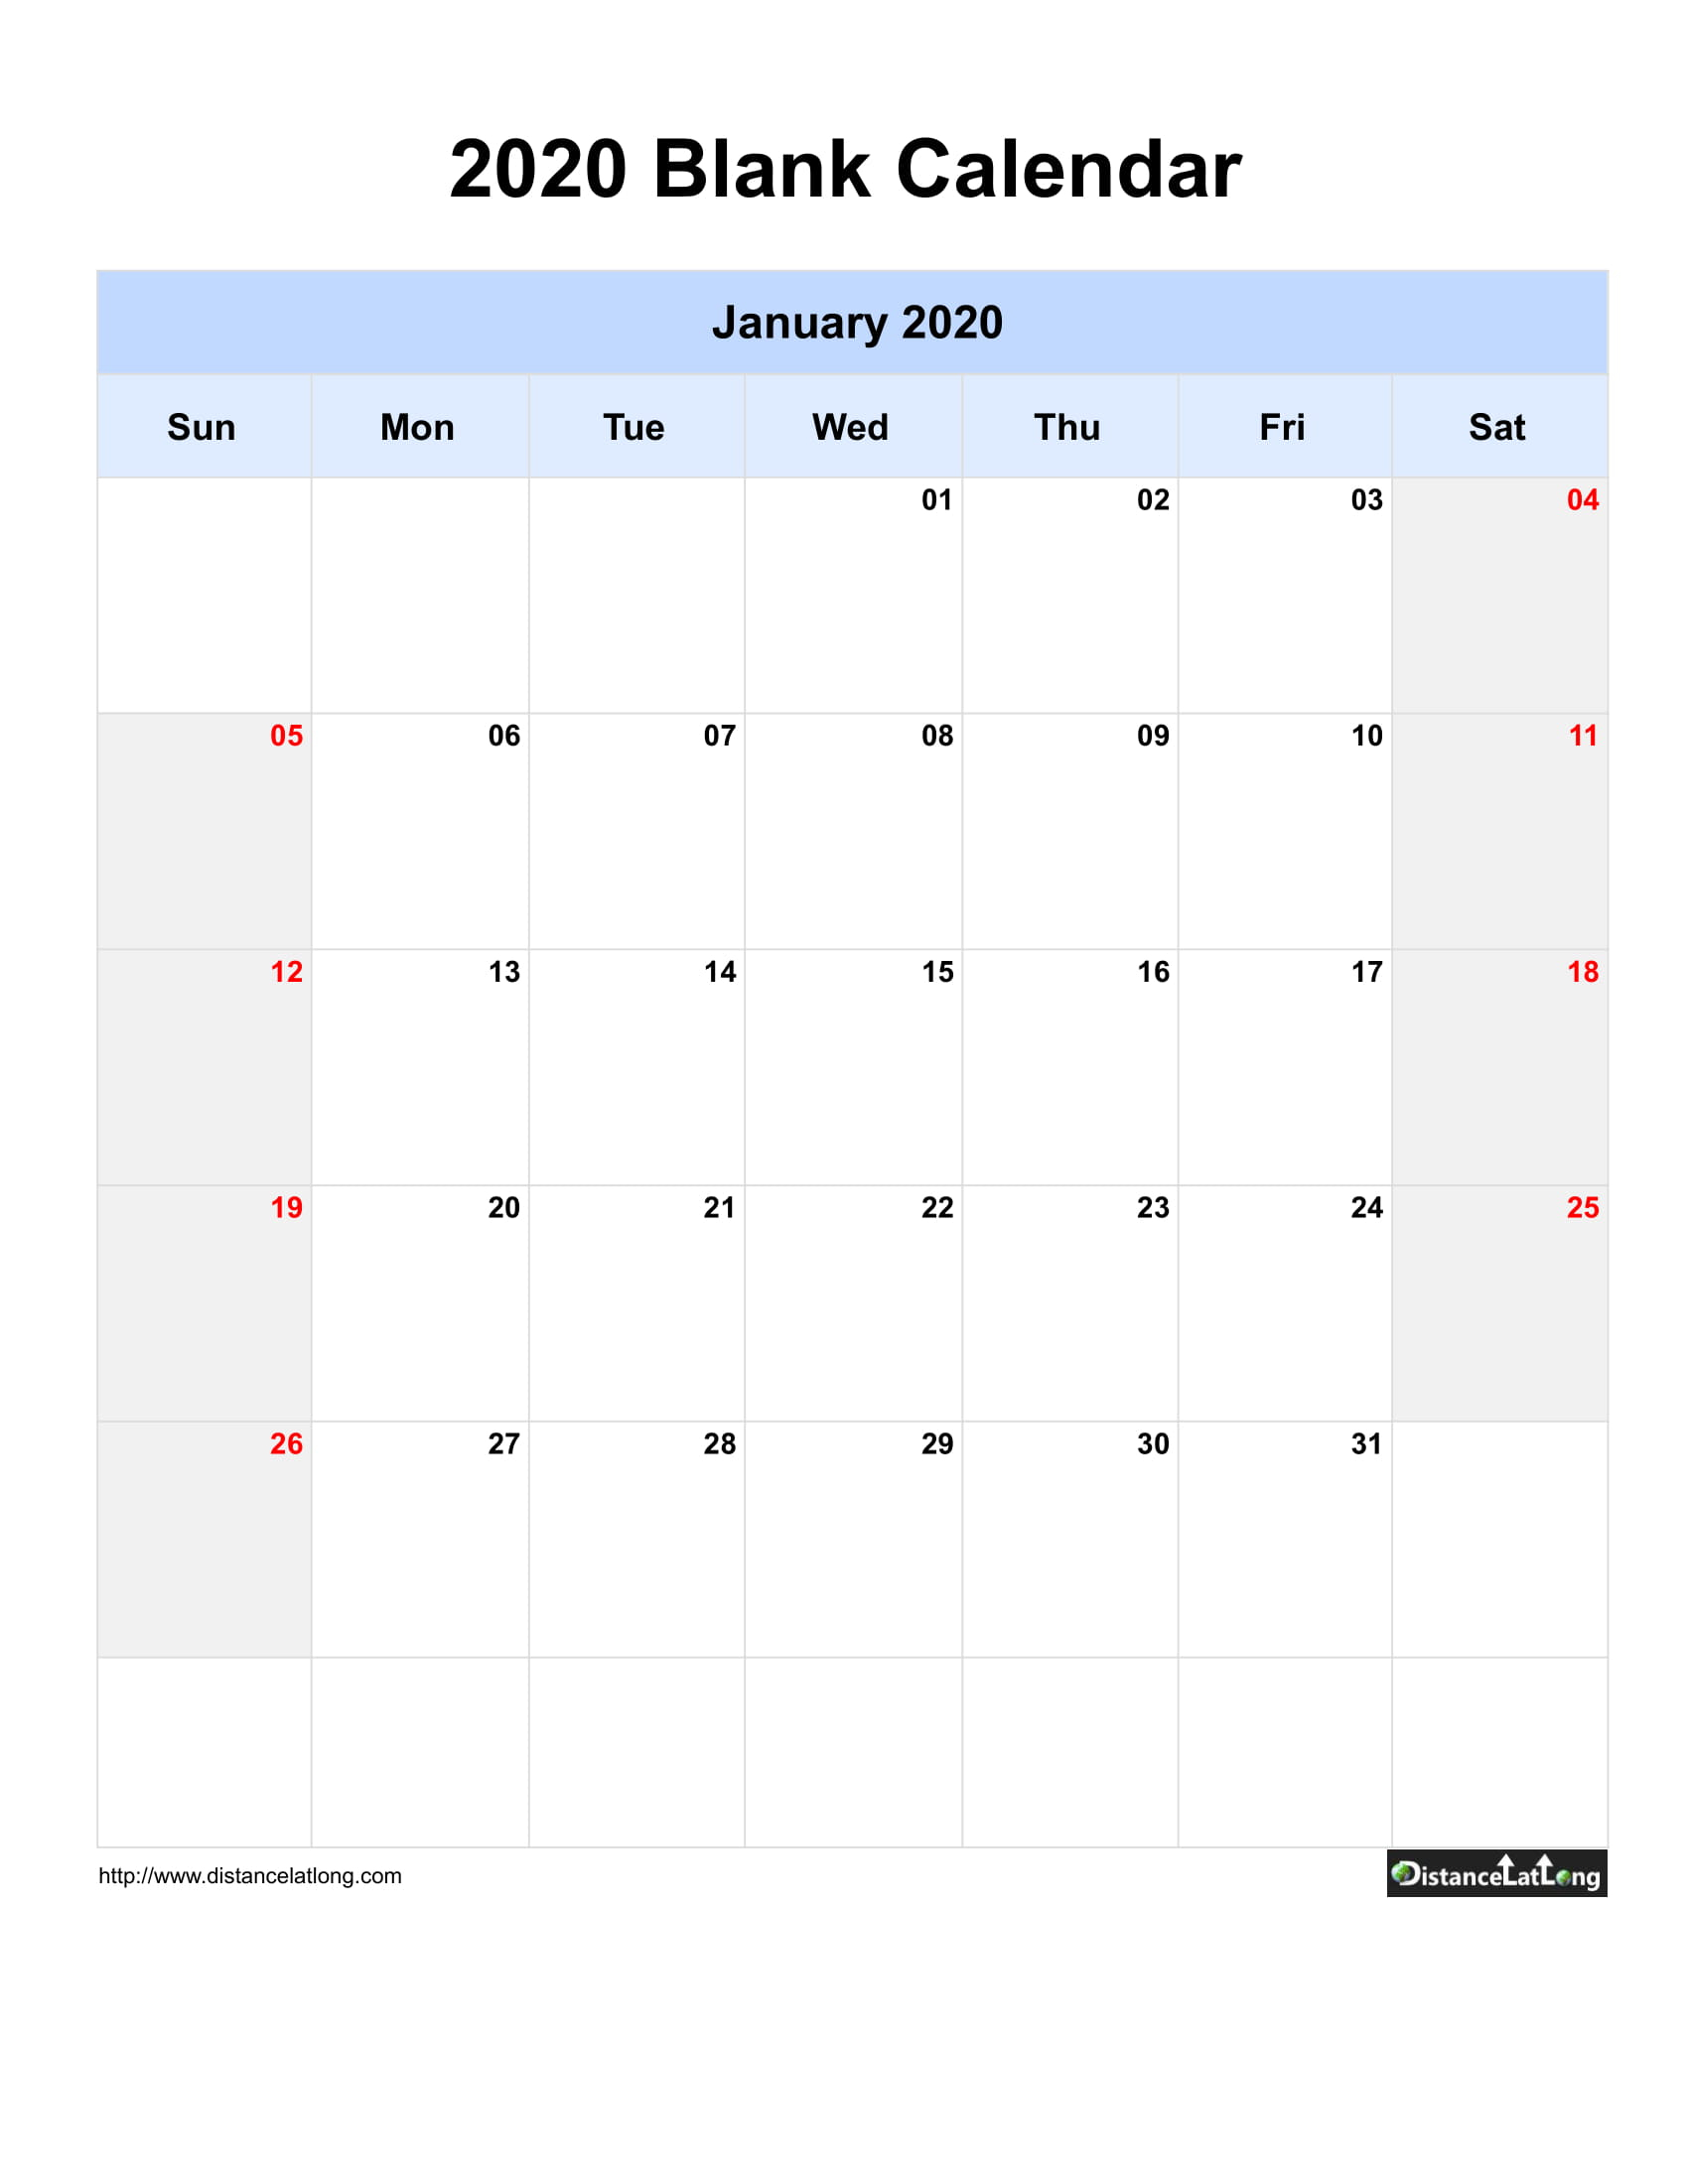 January 2020 Calendars For Pdf, Words And Jpg Formats